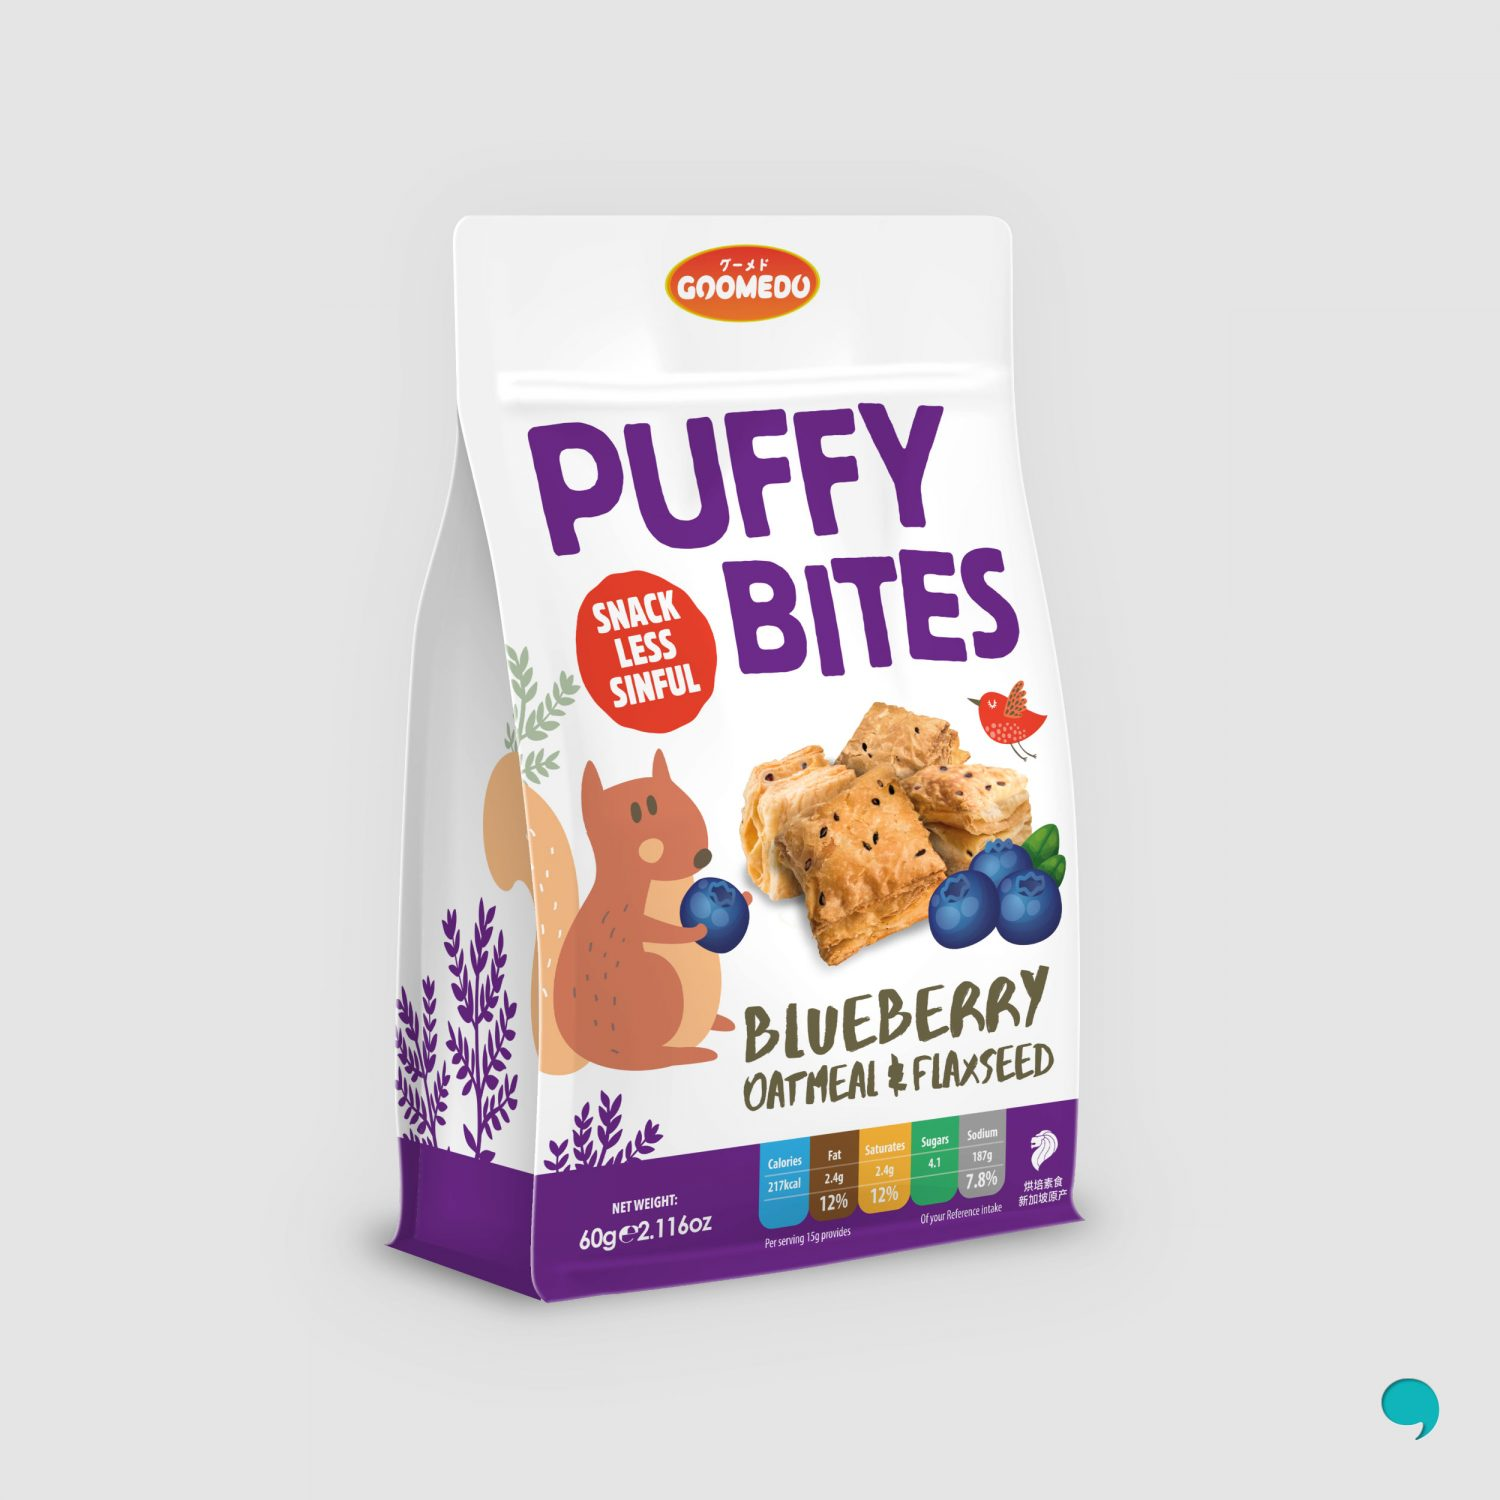 Packaging_PuffyBites_Blueberry